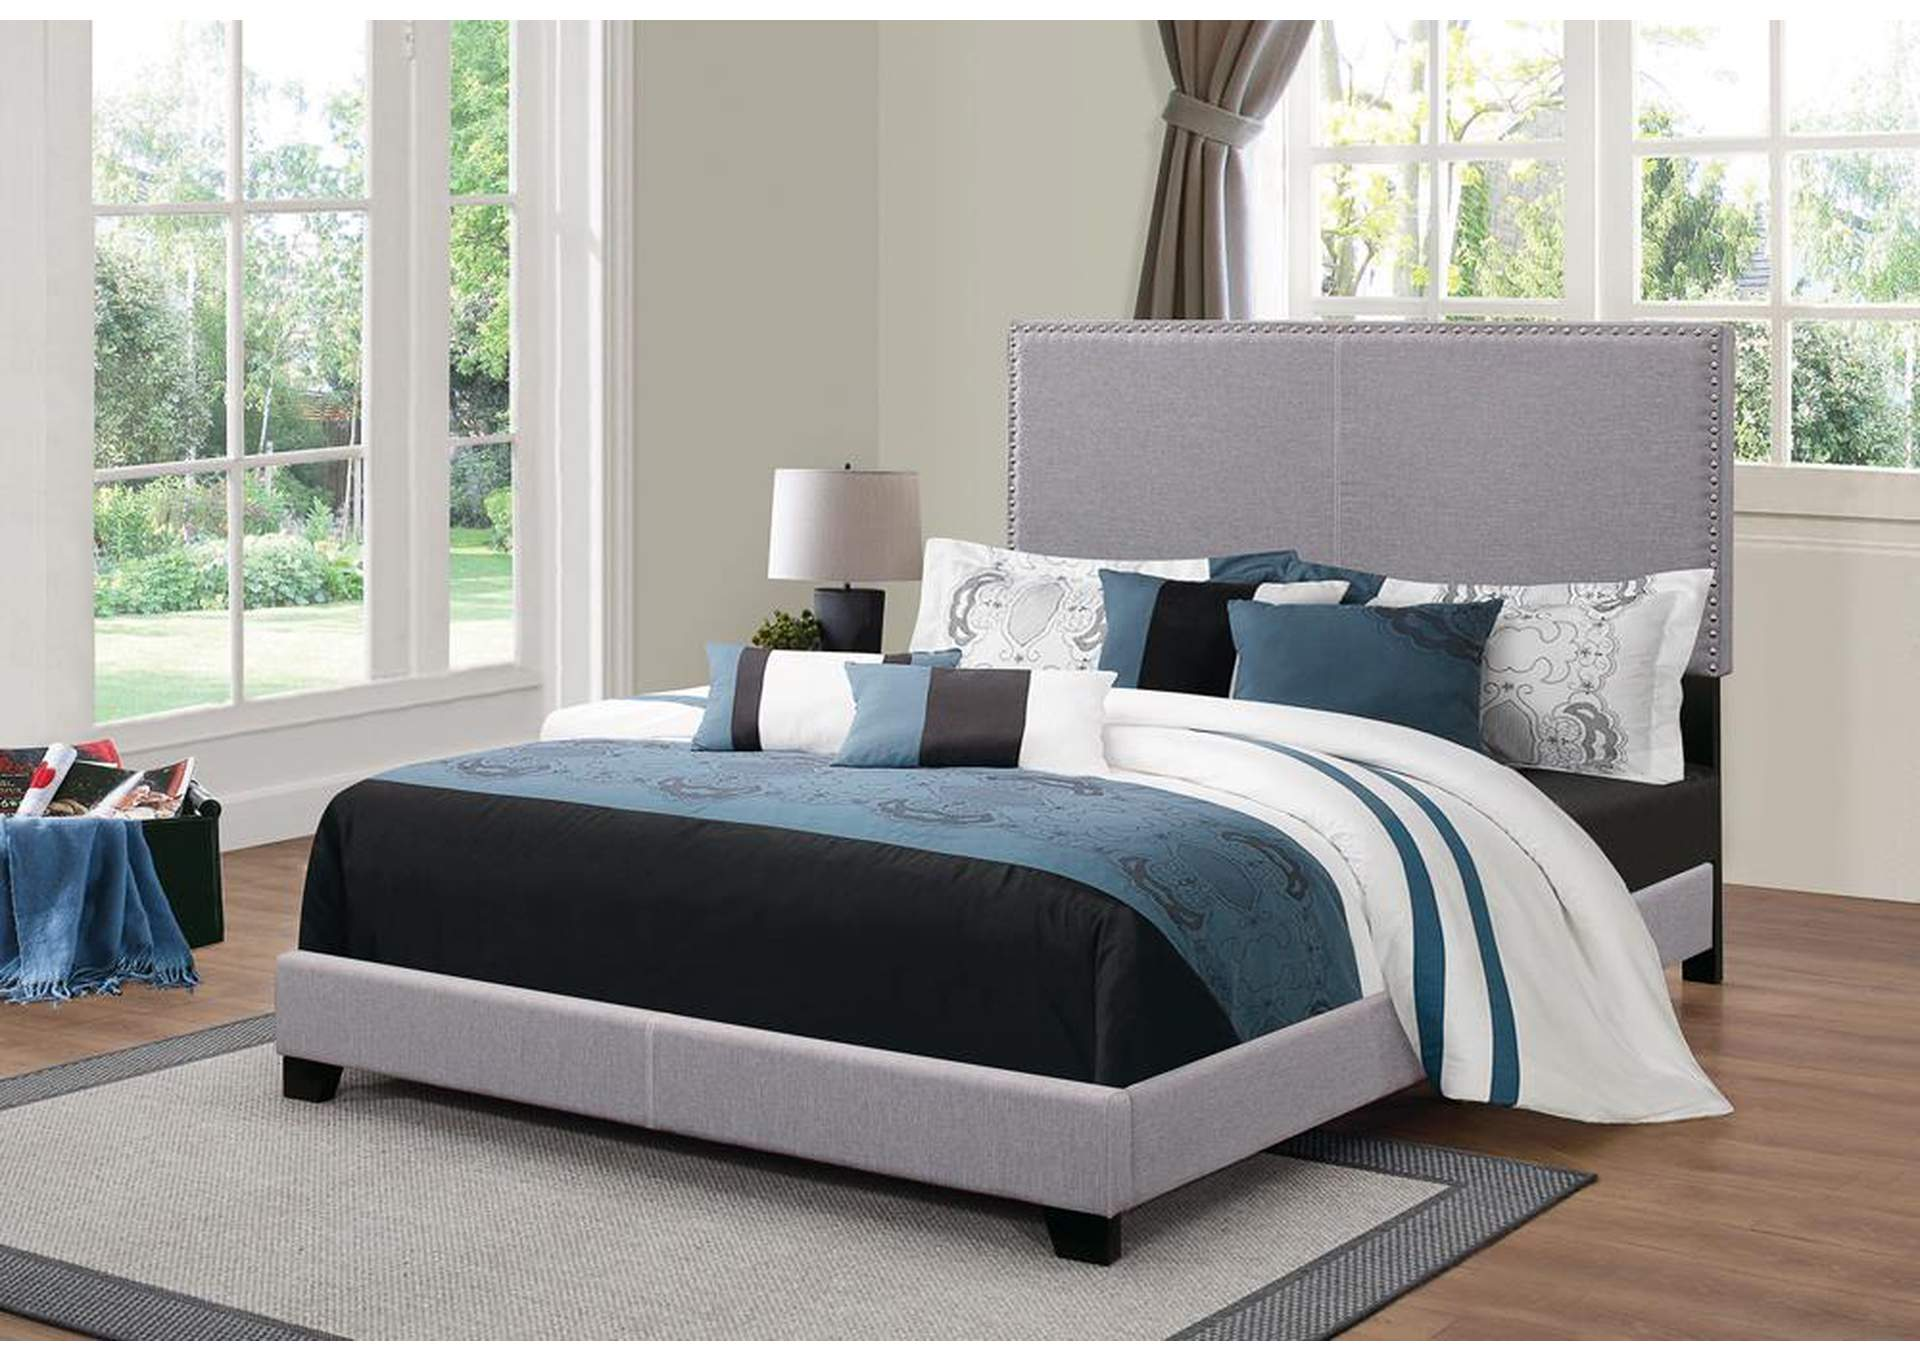 Davis home furniture asheville nc grey upholstered twin bed Davis home furniture asheville hours